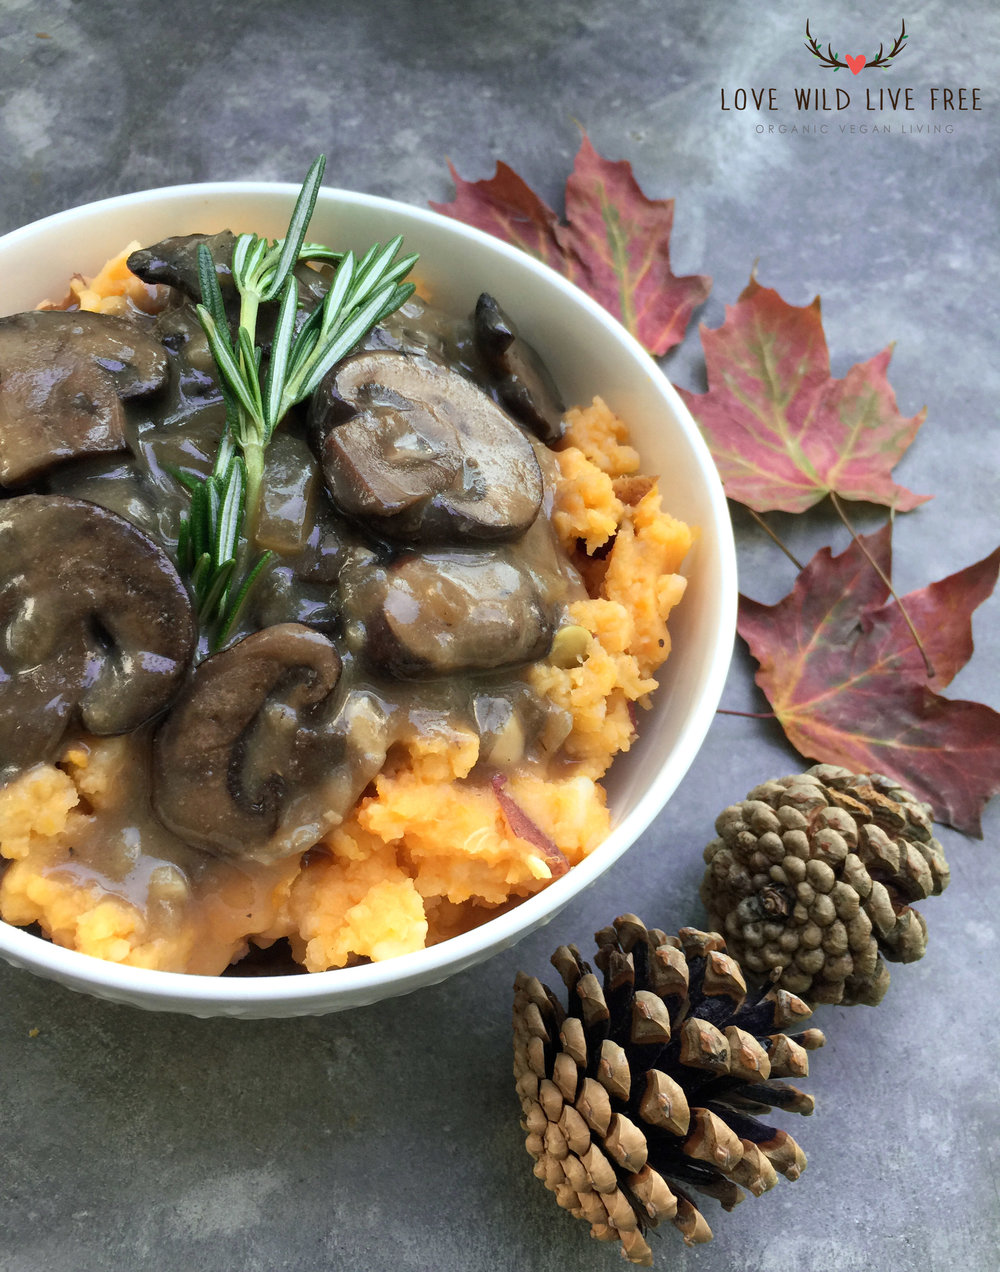 Garlicky Mashed Potatoes + Mushroom Gravy